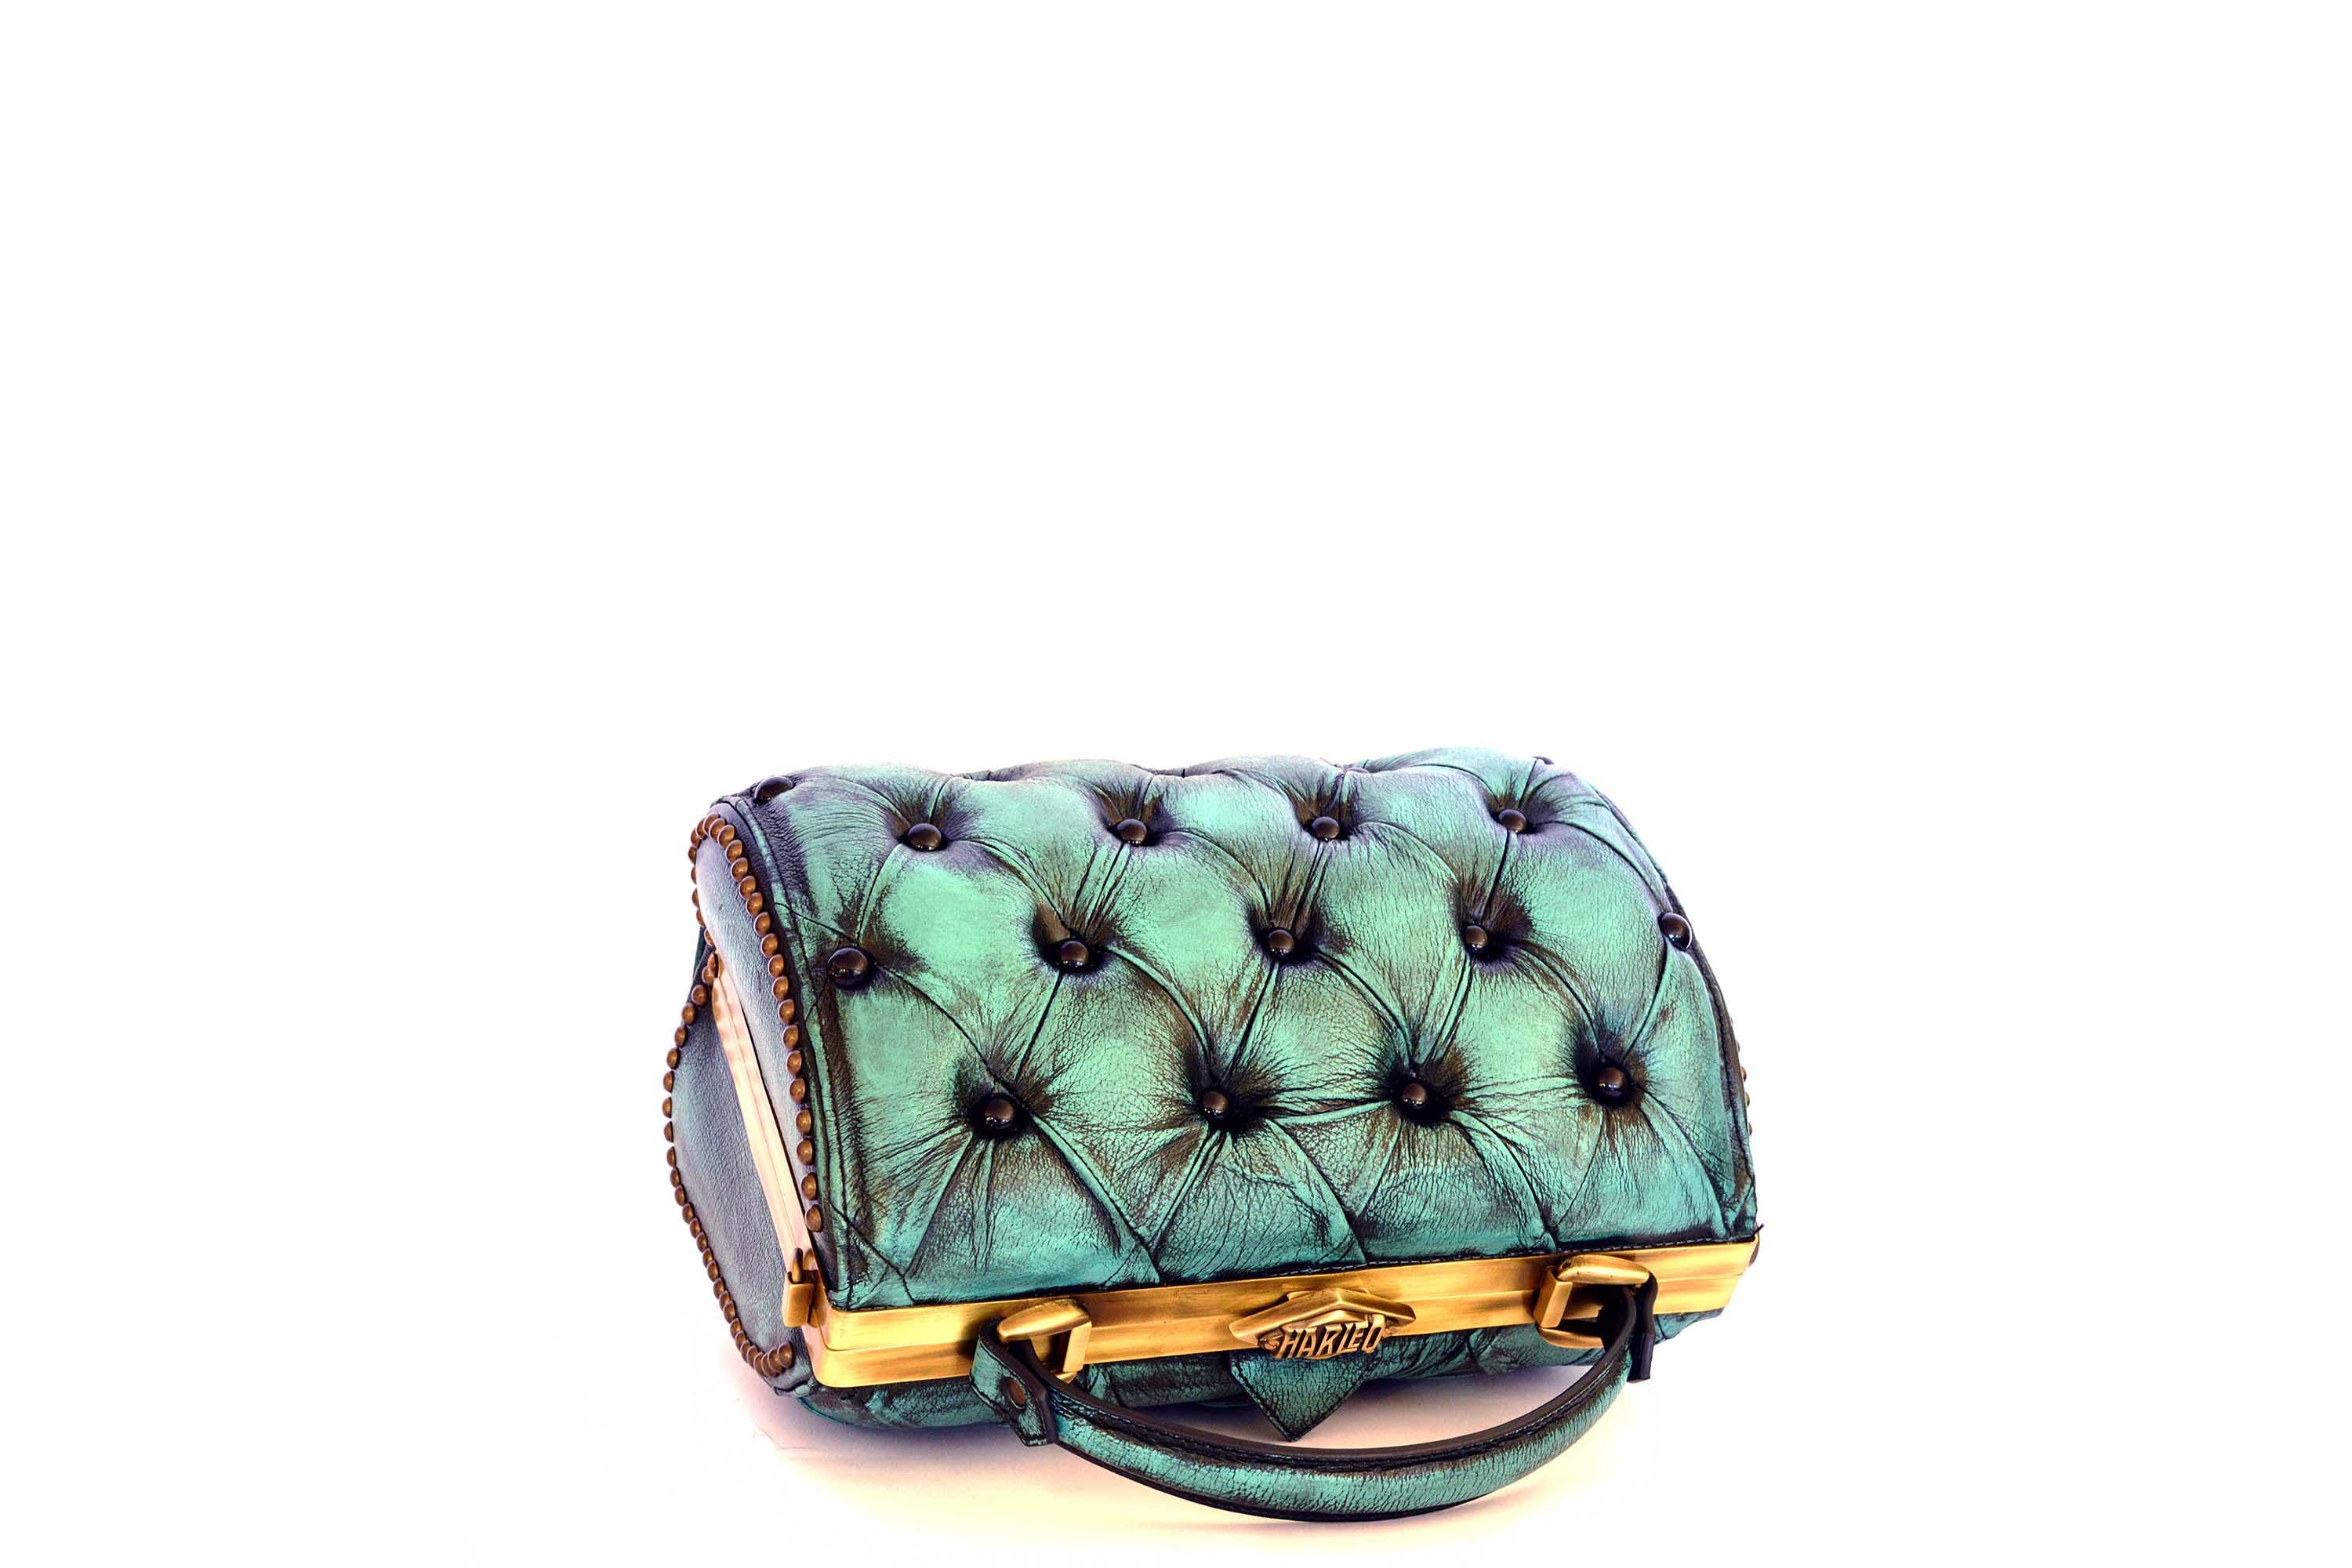 turquoise-leather-luxury-harleq-bags